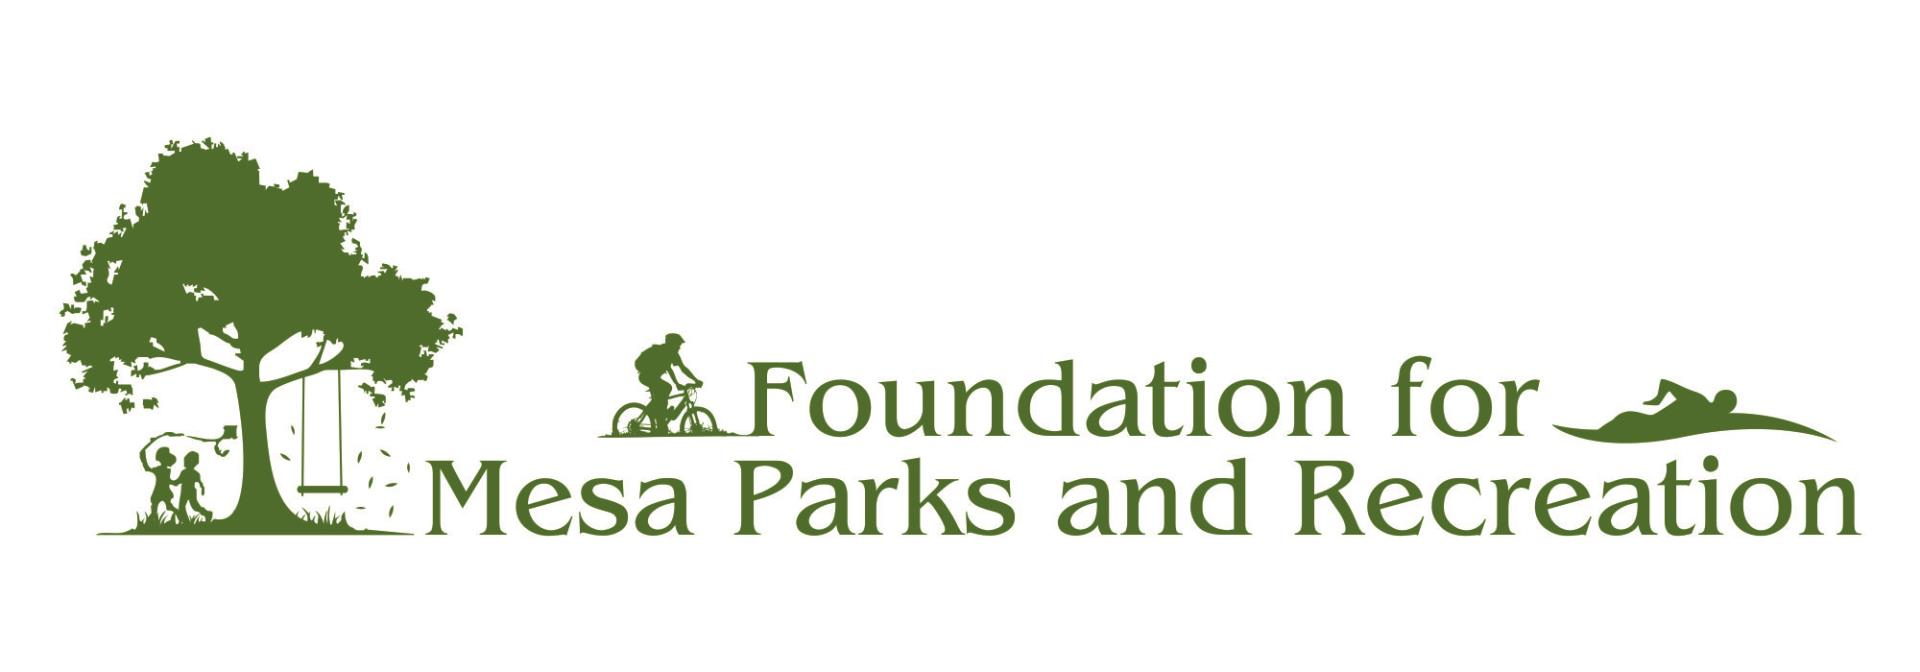 Foundation for Mesa Parks _Final_01072017 (002)